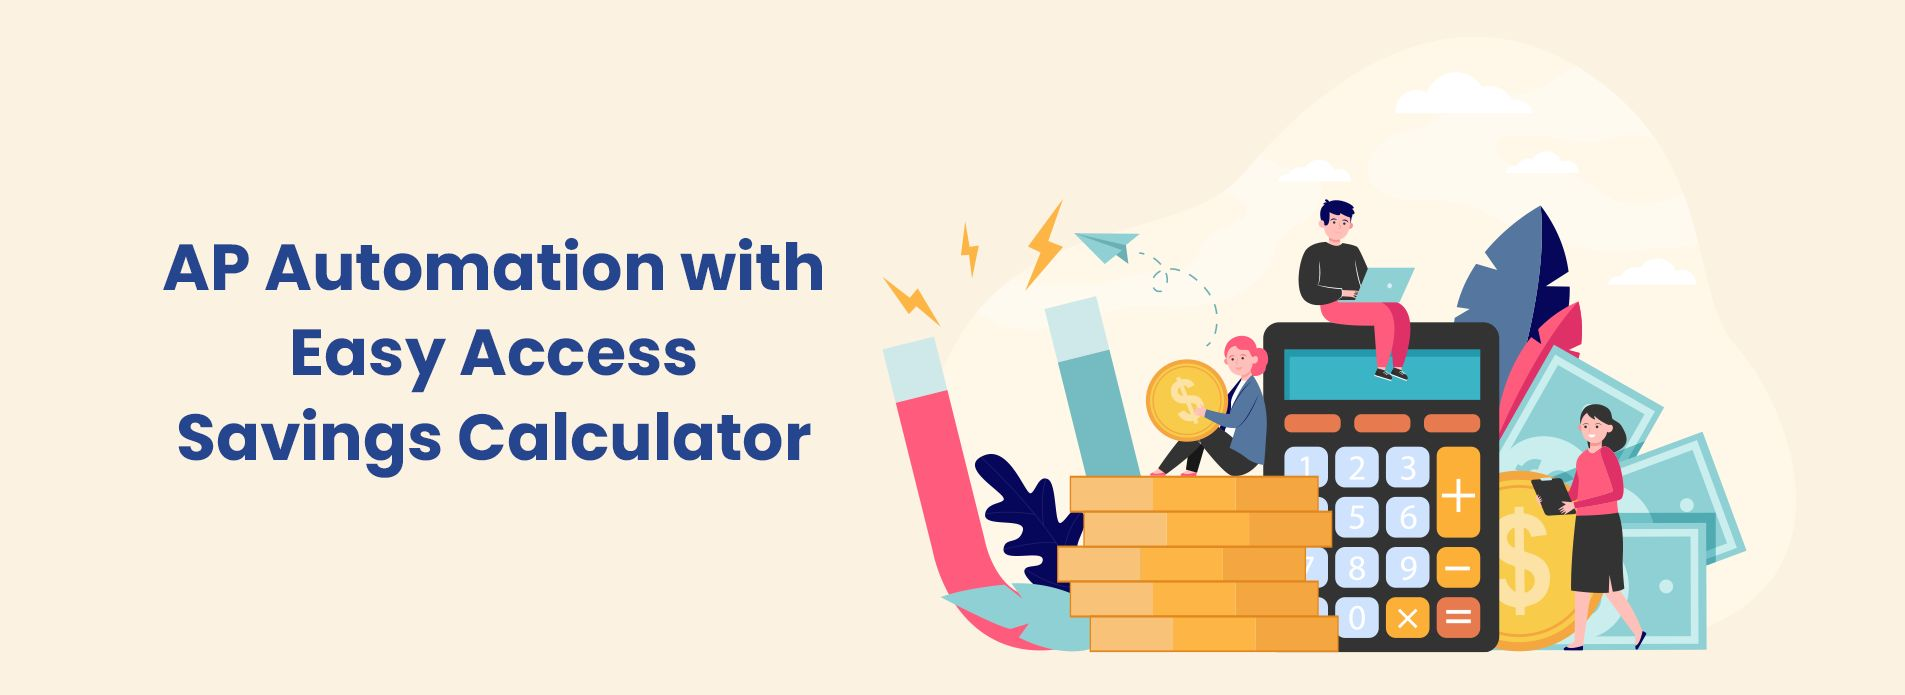 AP Automation with Easy Access Savings Calculator